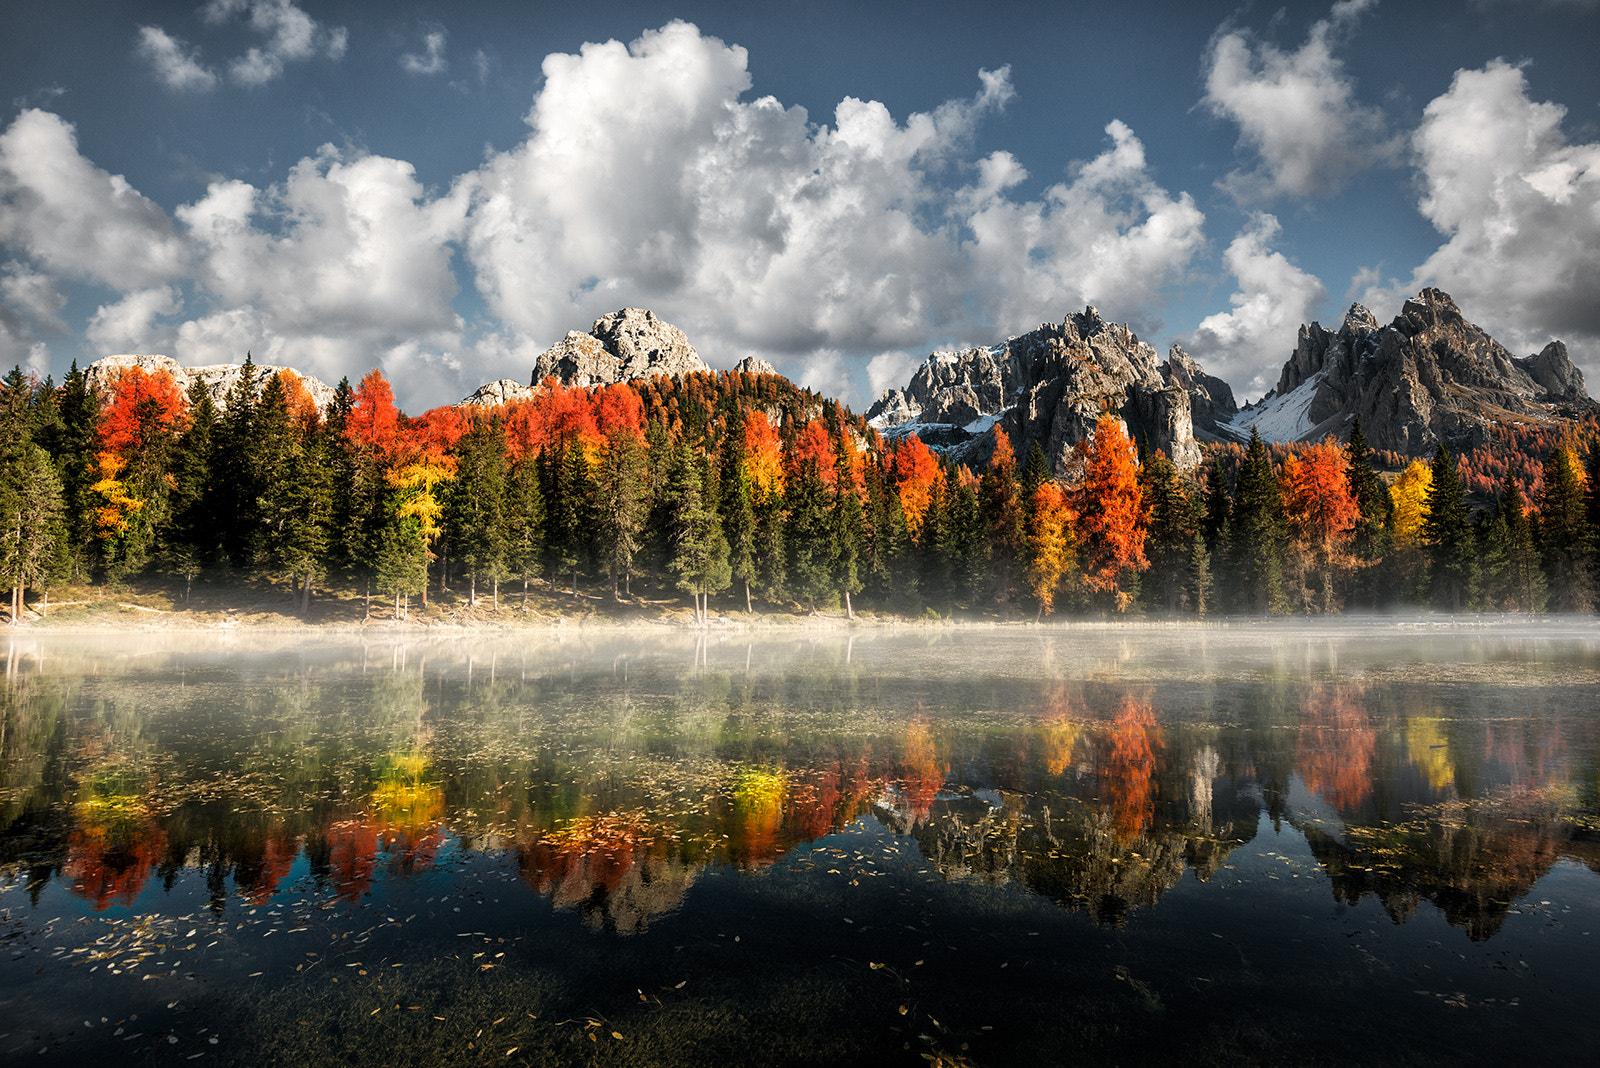 Photograph Misurina Antorno lake, Dolomiti by Marco Carmassi on 500px